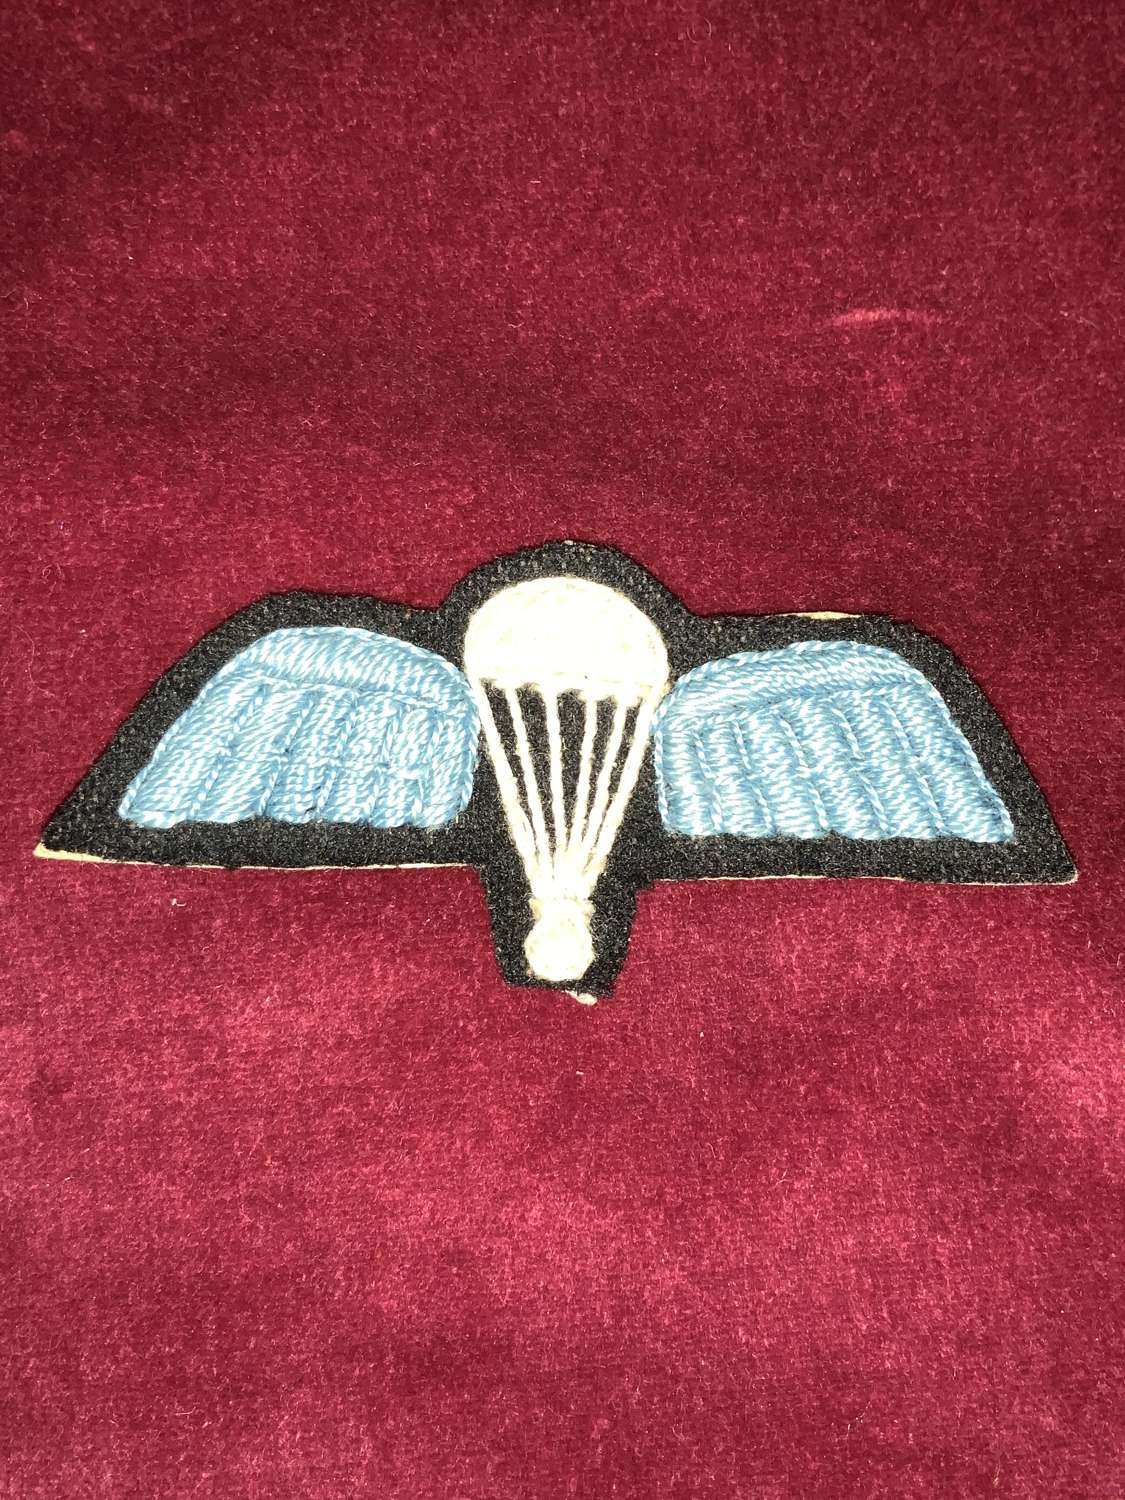 44th Indian made Parachute qualification wing.